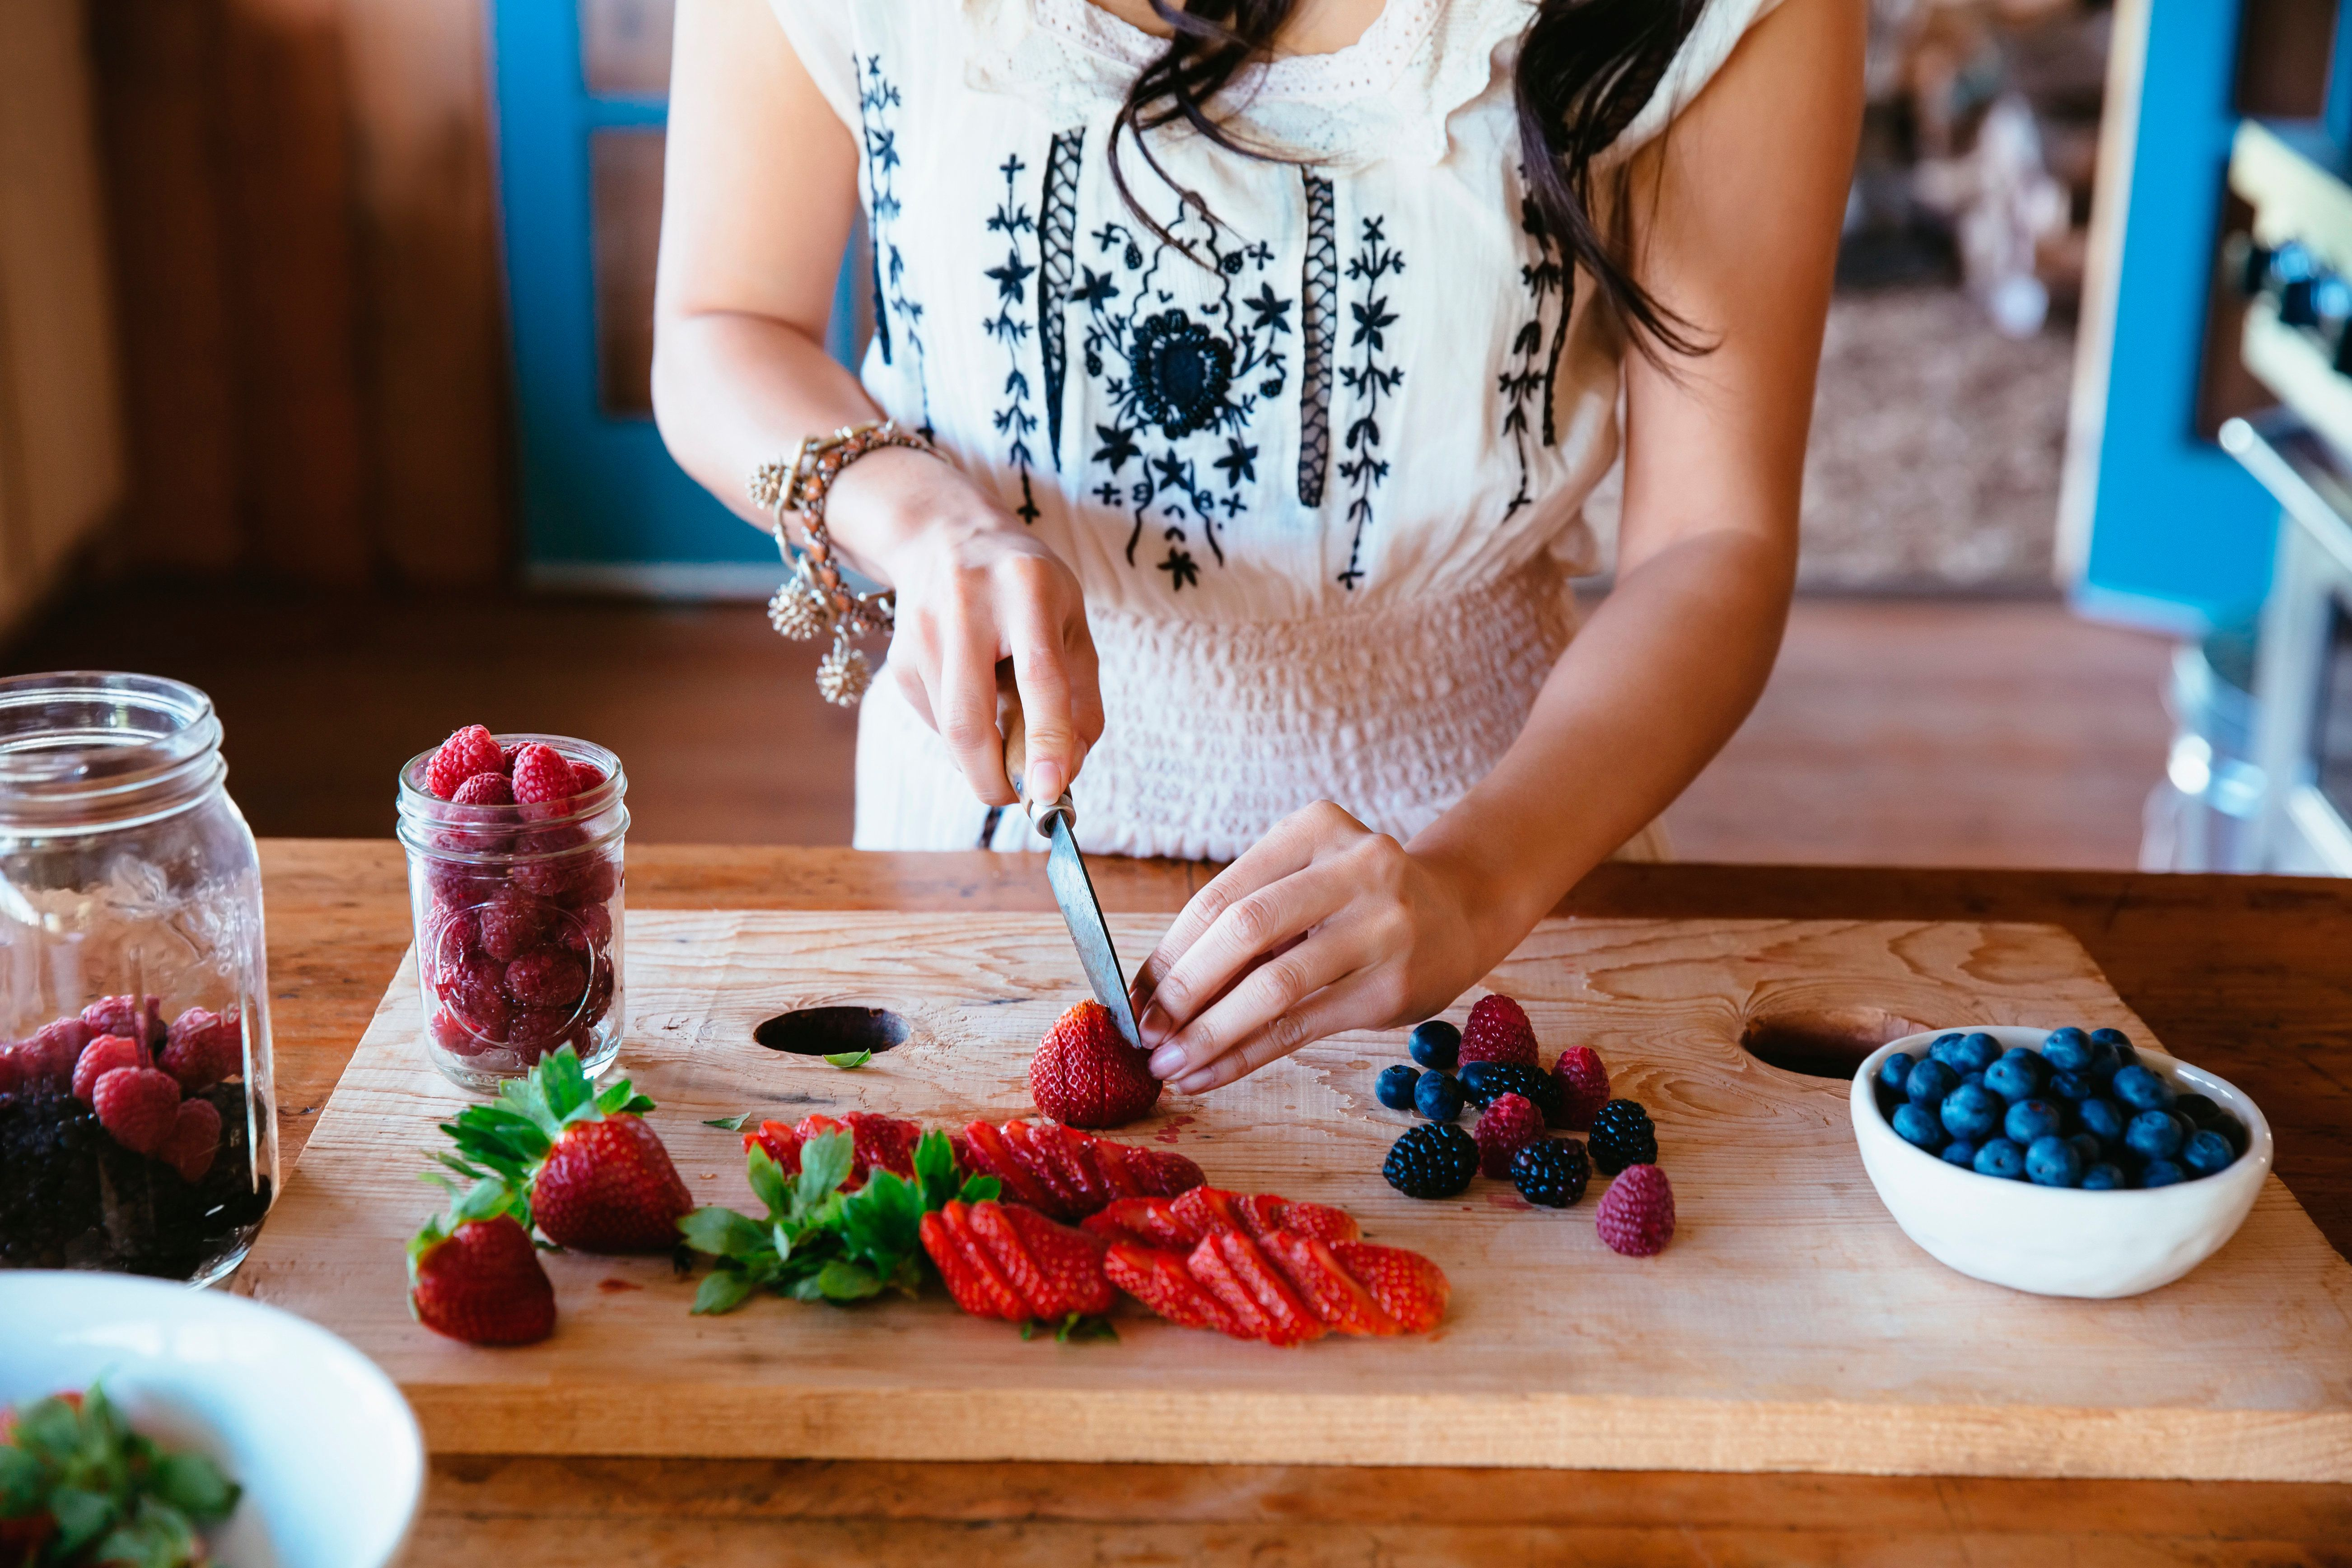 We talked to experts about simple ways you can prep, store and arrange your food to get the most out of a healthier lifestyle.